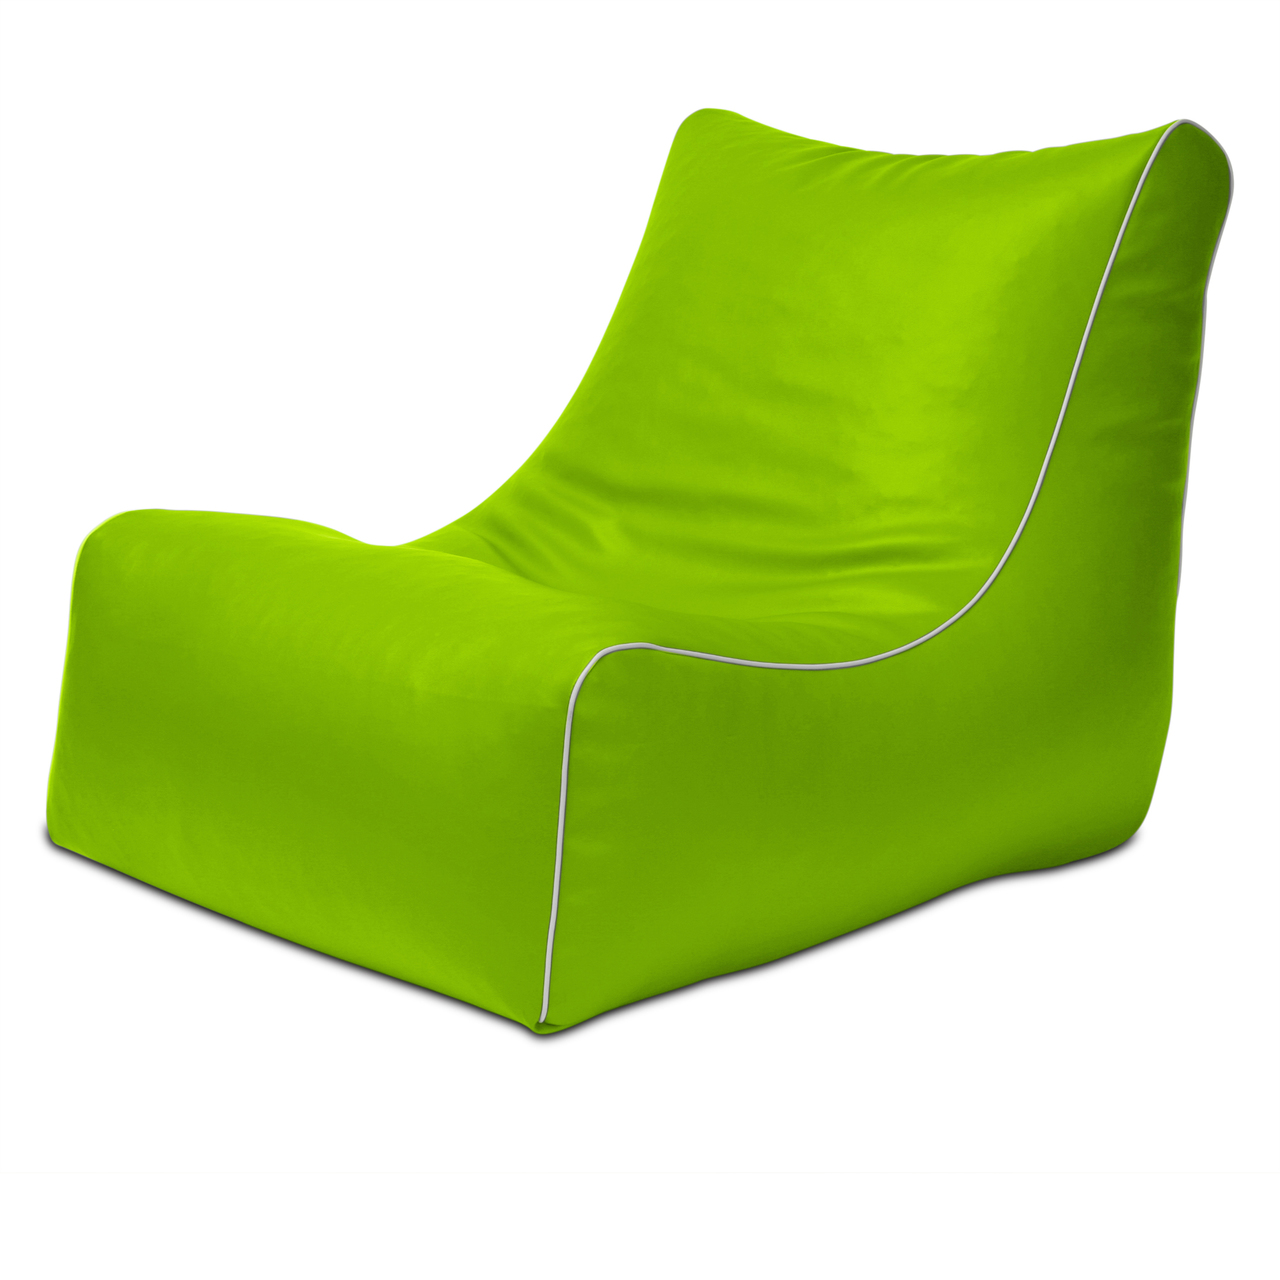 Retro L-Shape in lime